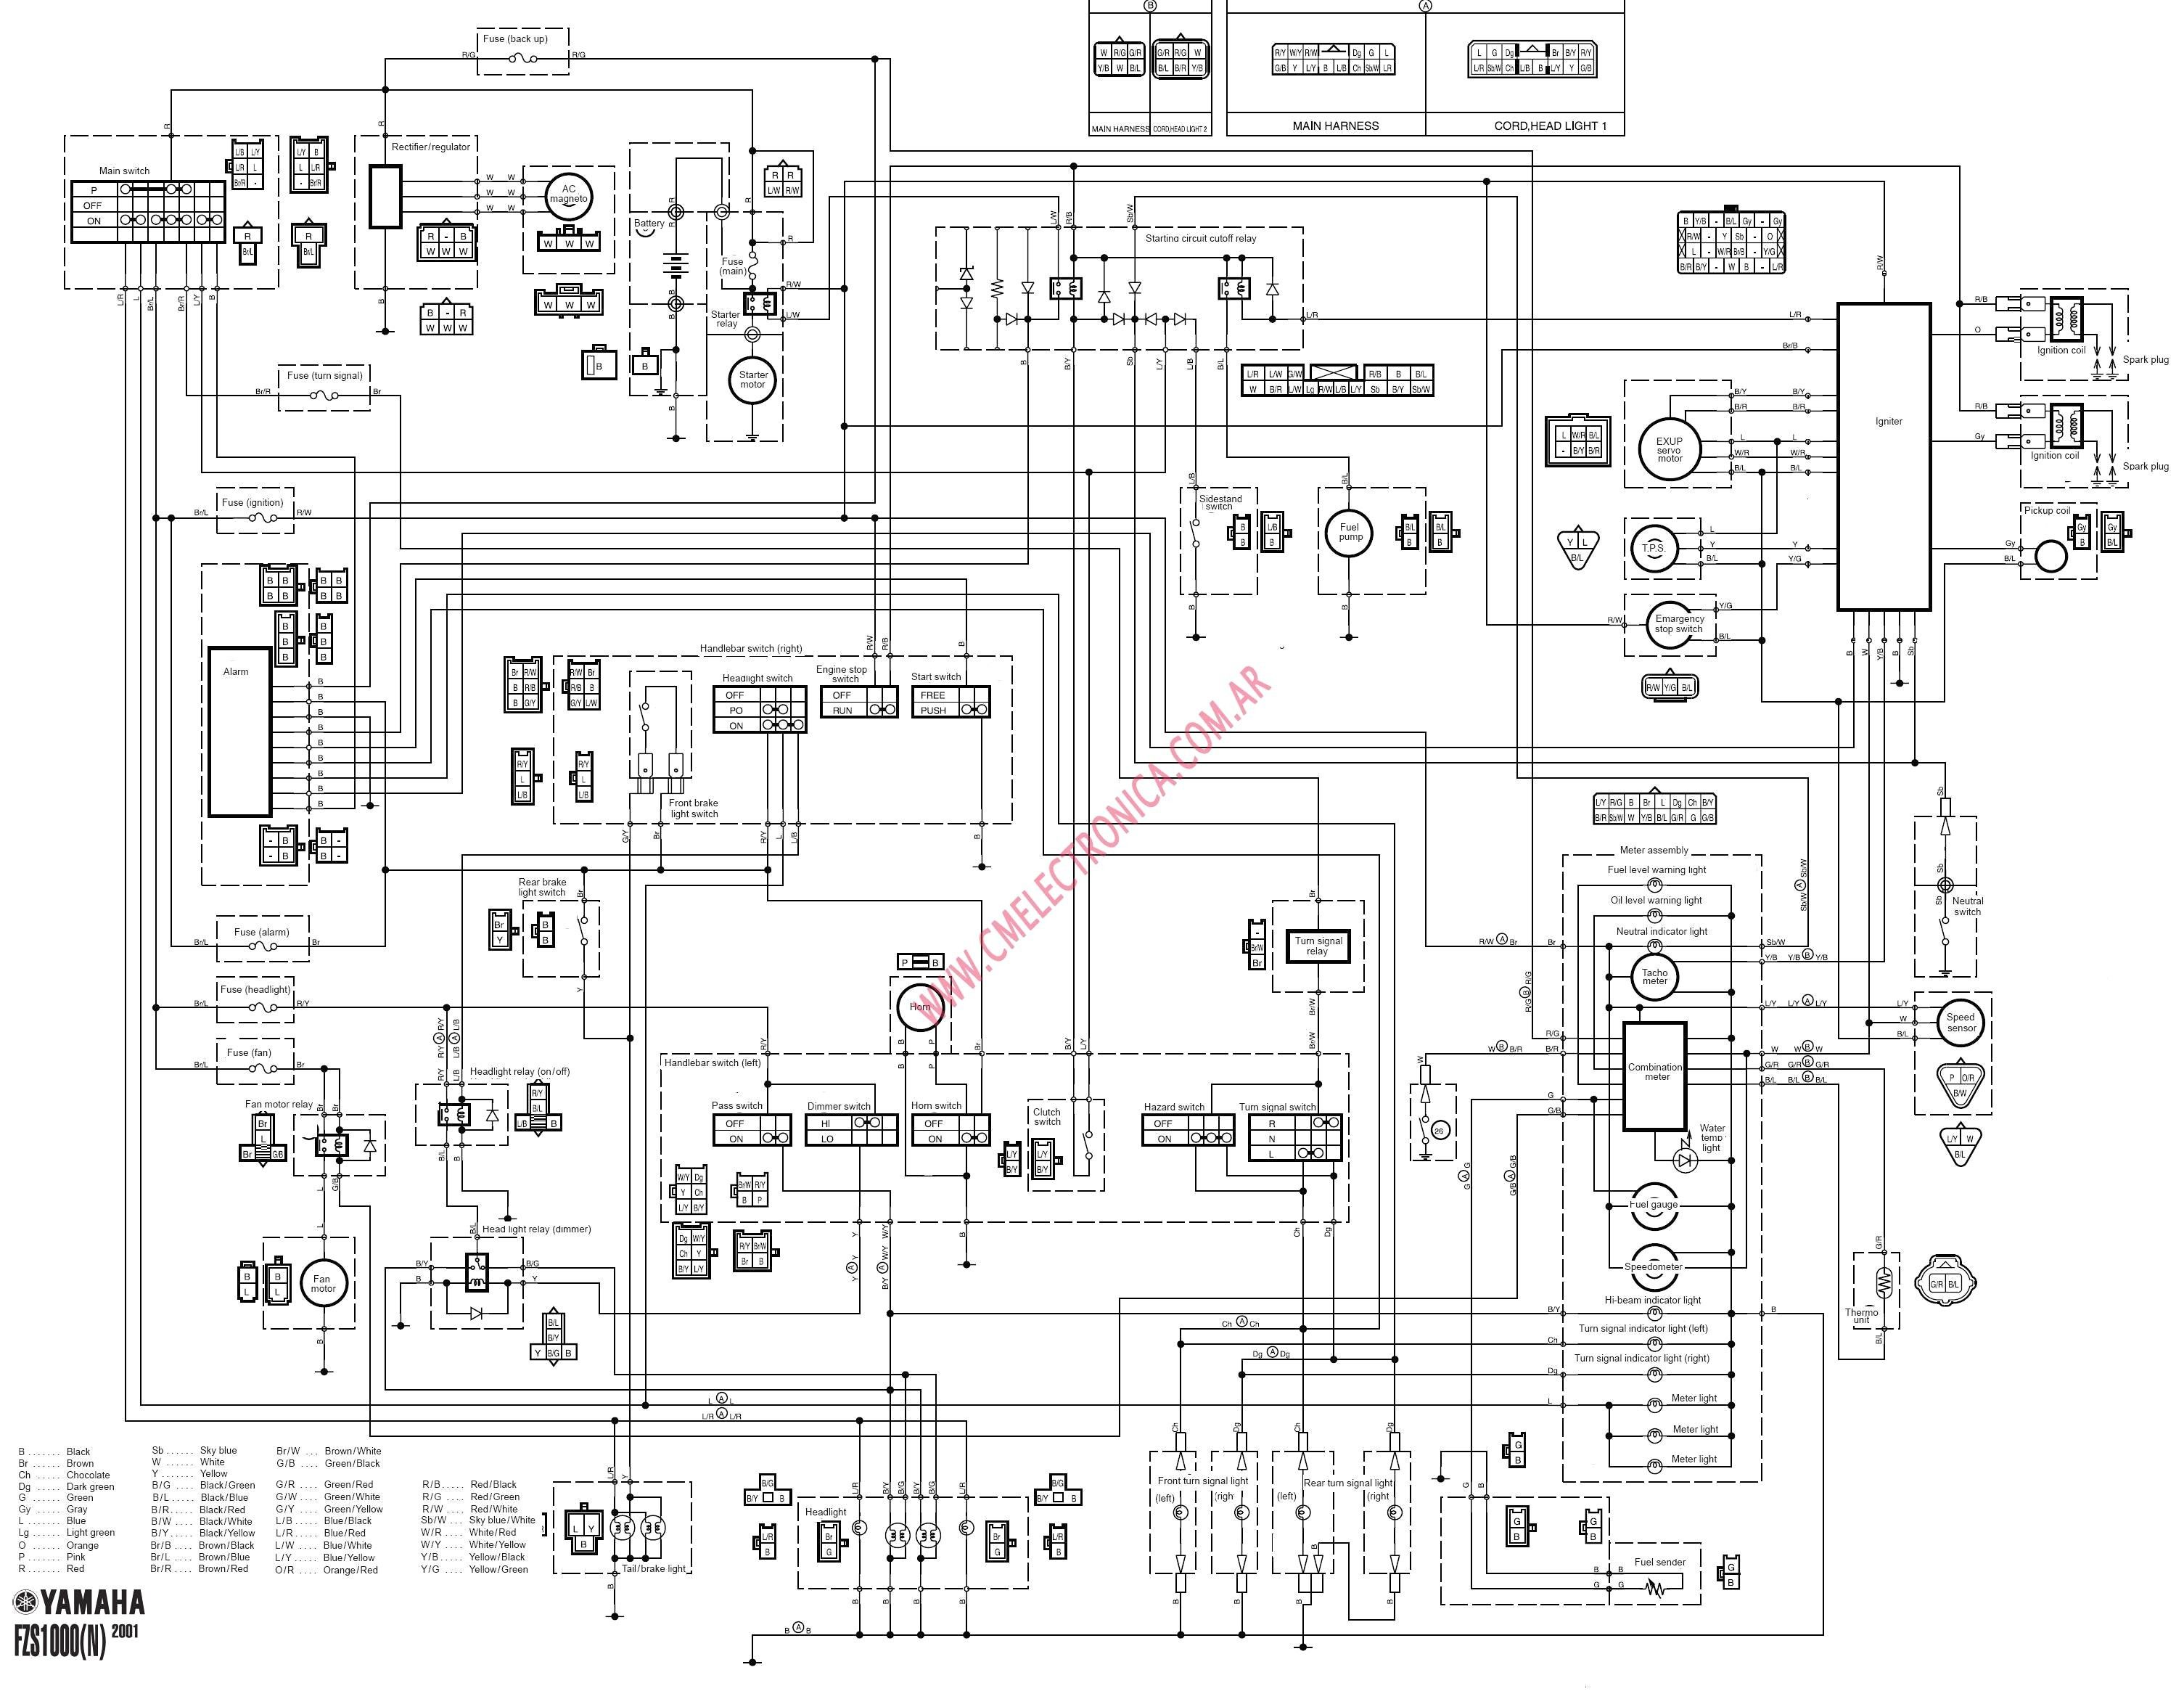 [DIAGRAM] Harley Davidson 110 Engine Diagram FULL Version